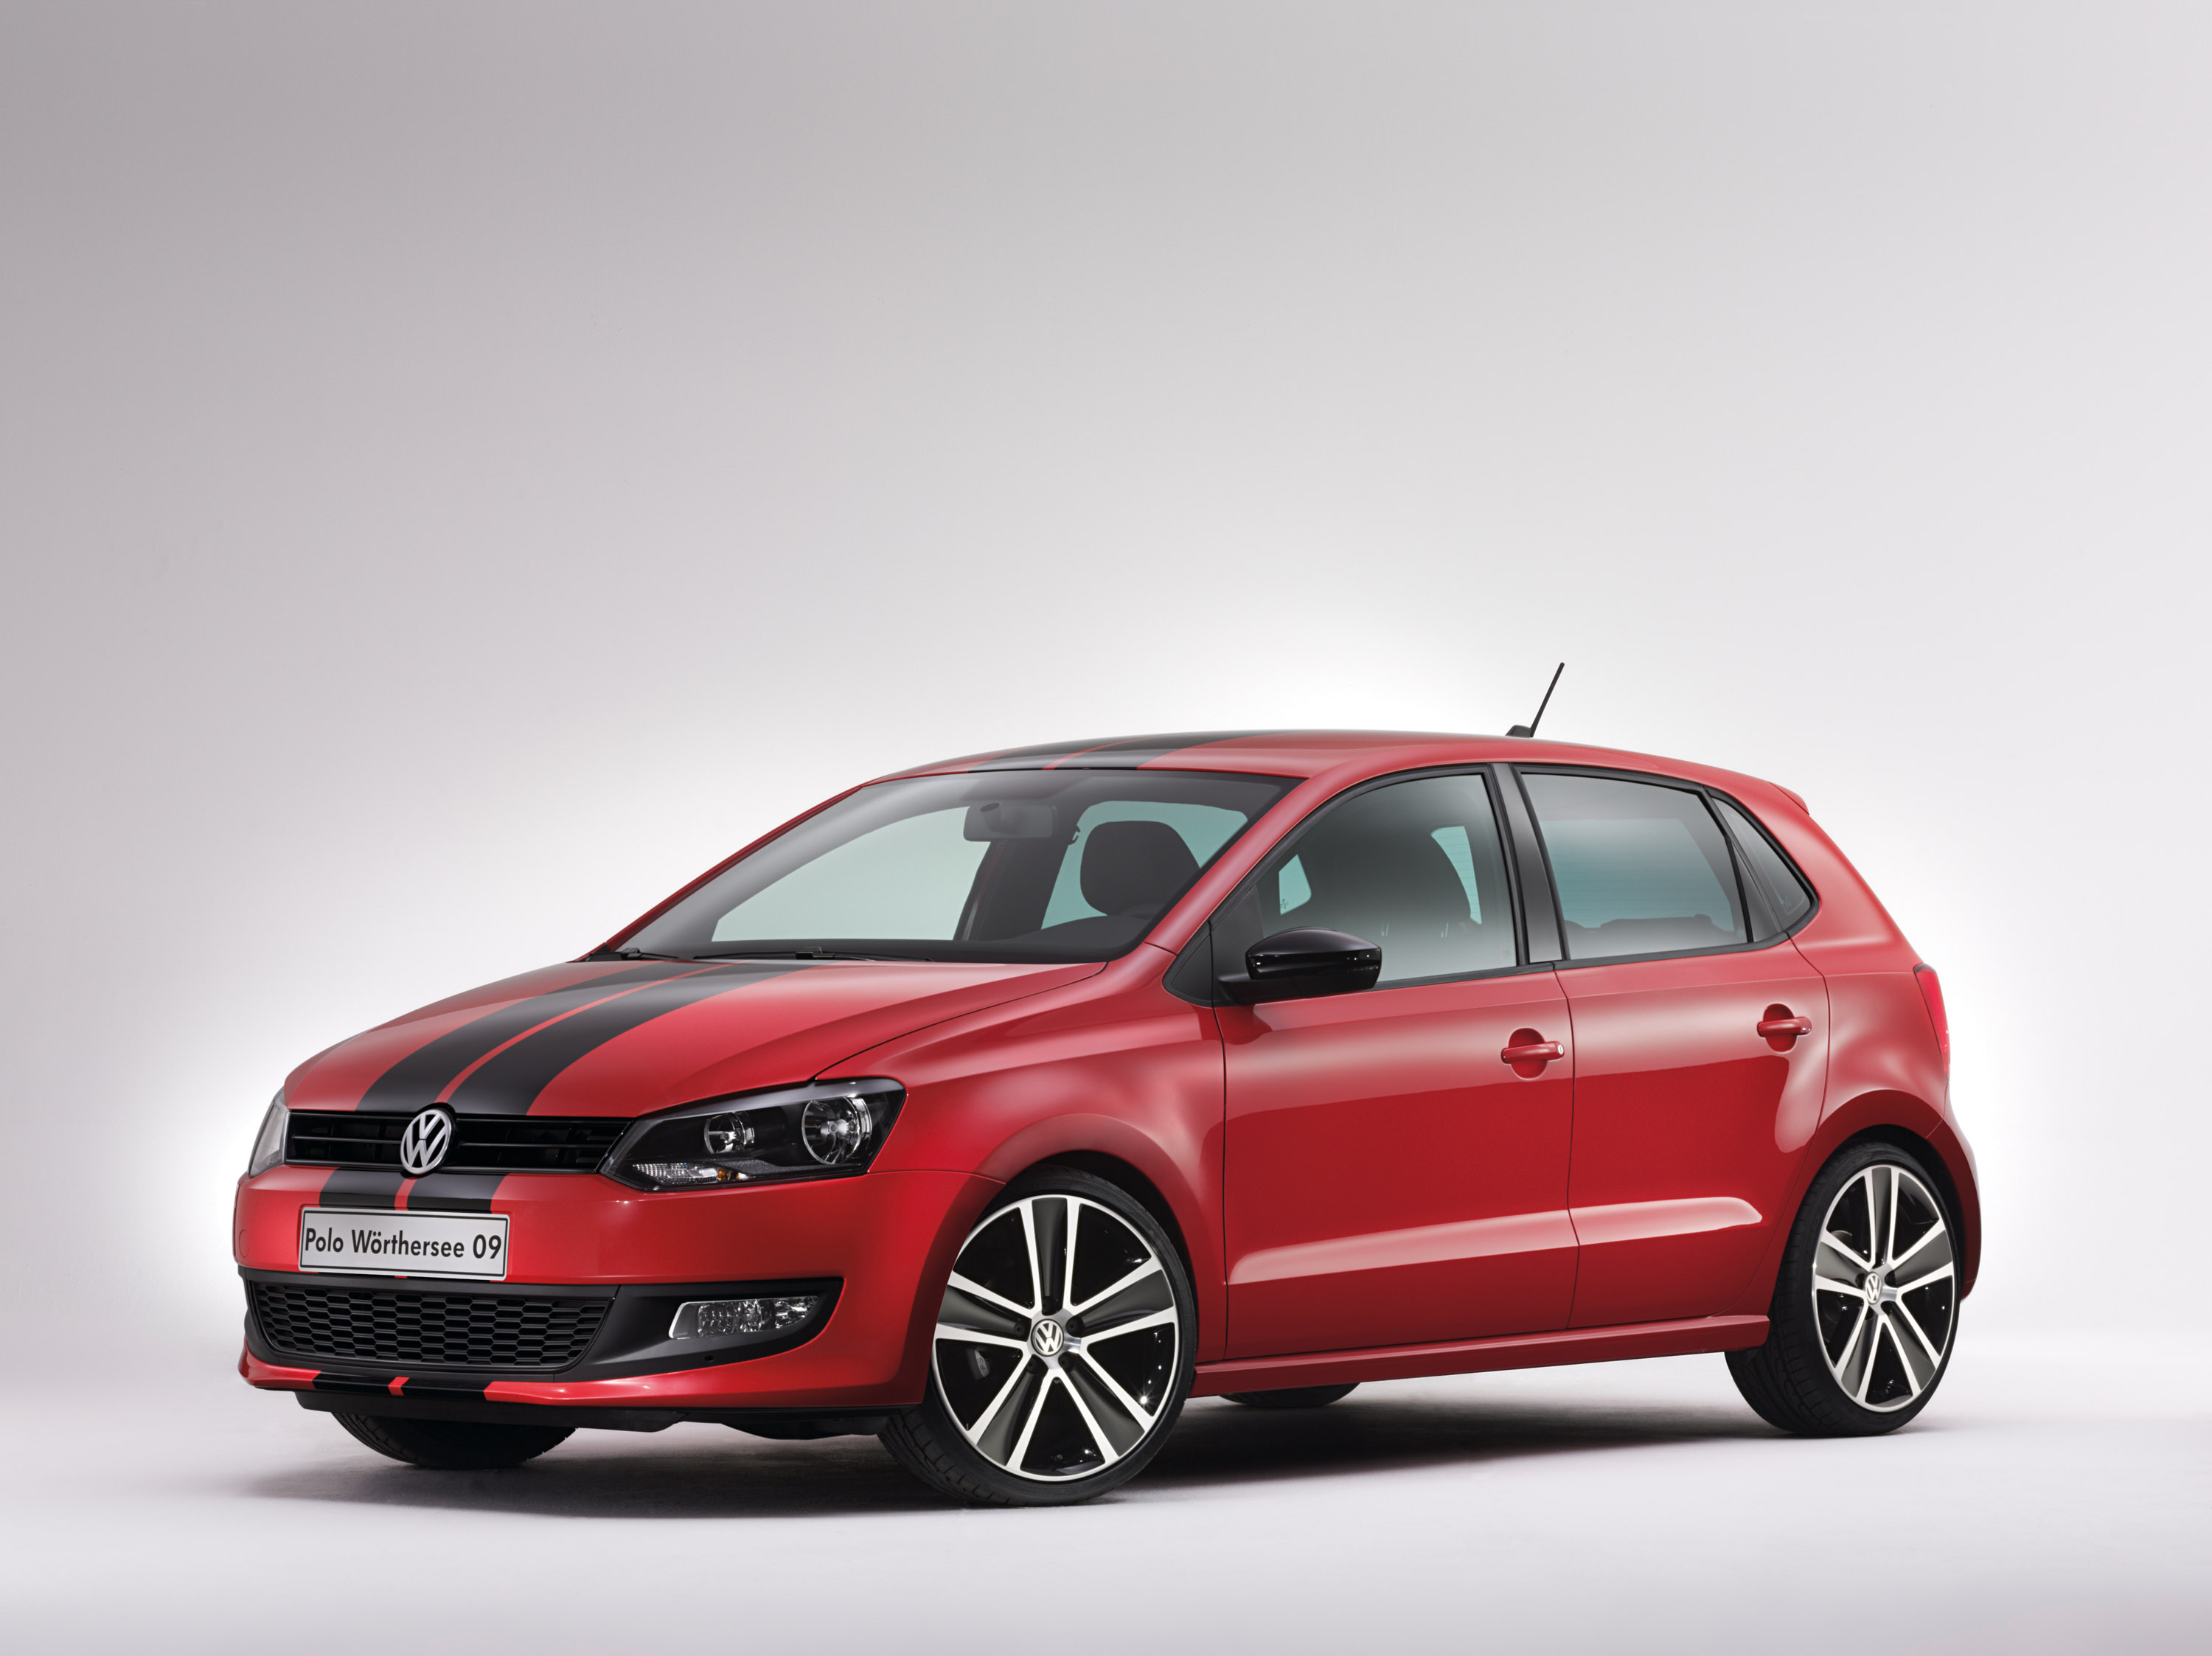 vw polo w rthersee 09 concept car. Black Bedroom Furniture Sets. Home Design Ideas